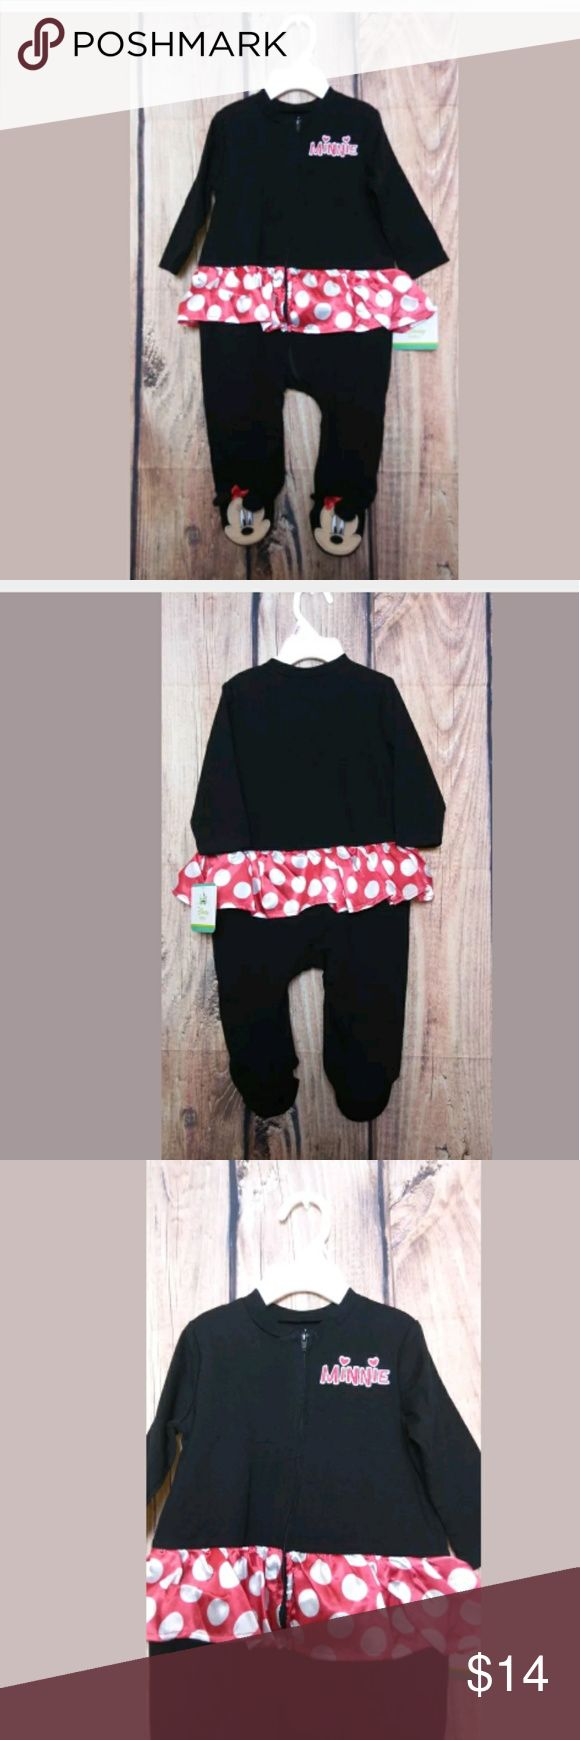 Disney Baby Minnie Mouse One Piece Footed Pajamas Disney Baby Minnie Mouse One Piece Footed Pajamas Hooded Size 3-6 Months NEW Disney One Pieces Footies